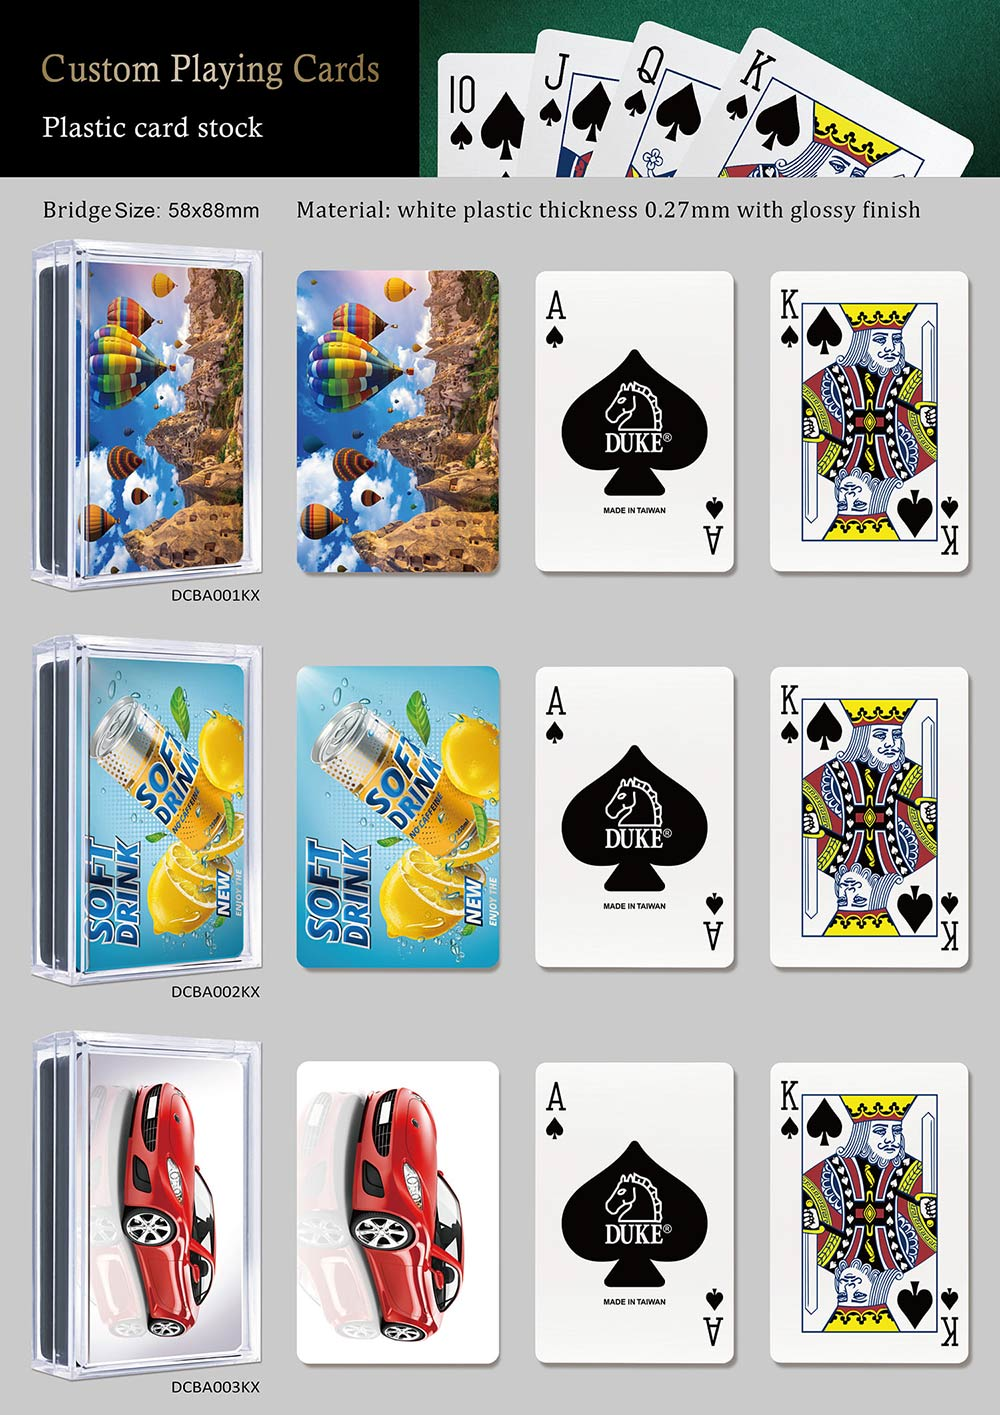 Ad playing cards-Plastic